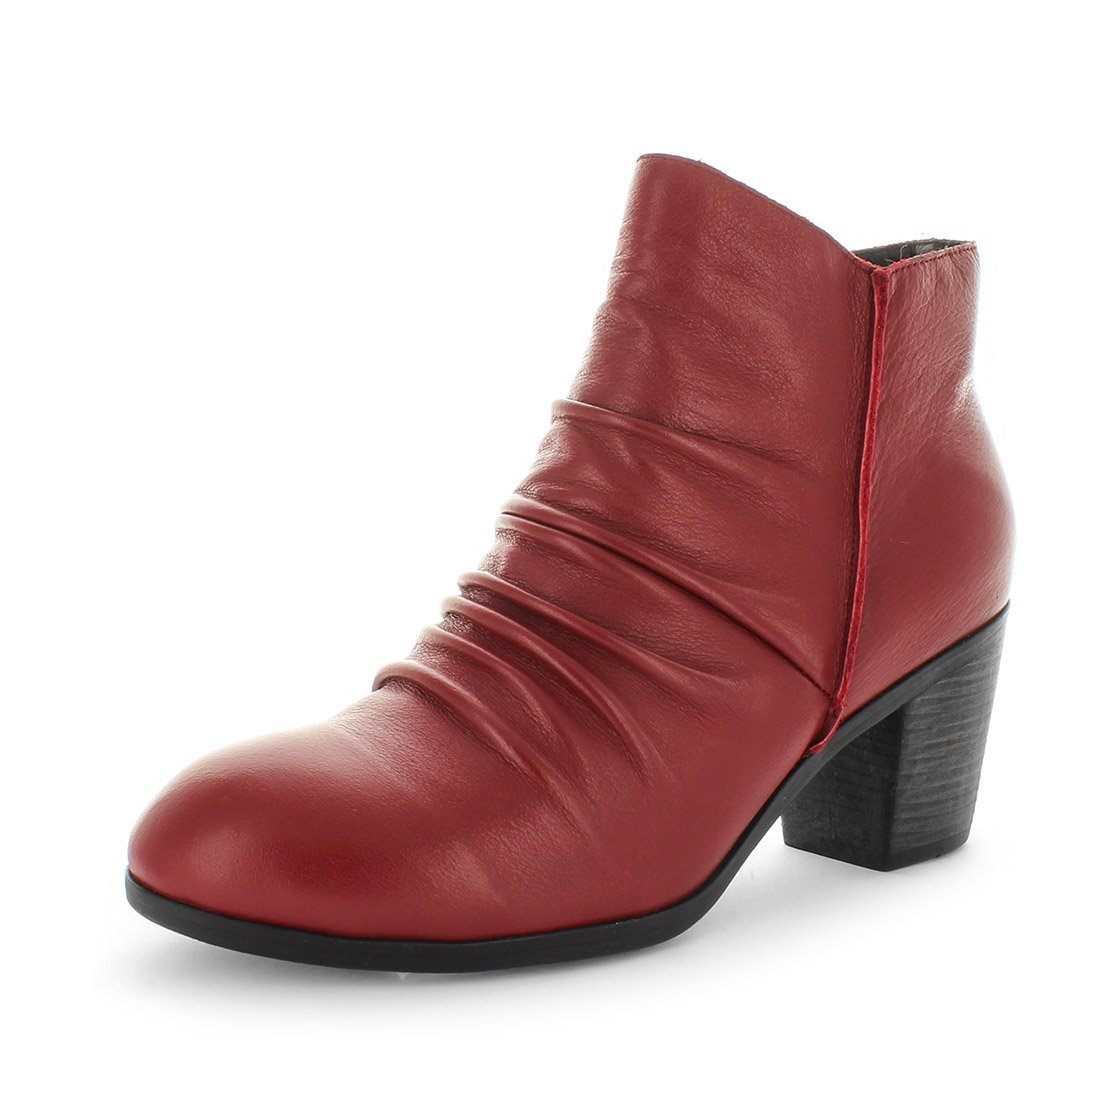 womens boots, womens ankle boots, rouched boots, comfort boots